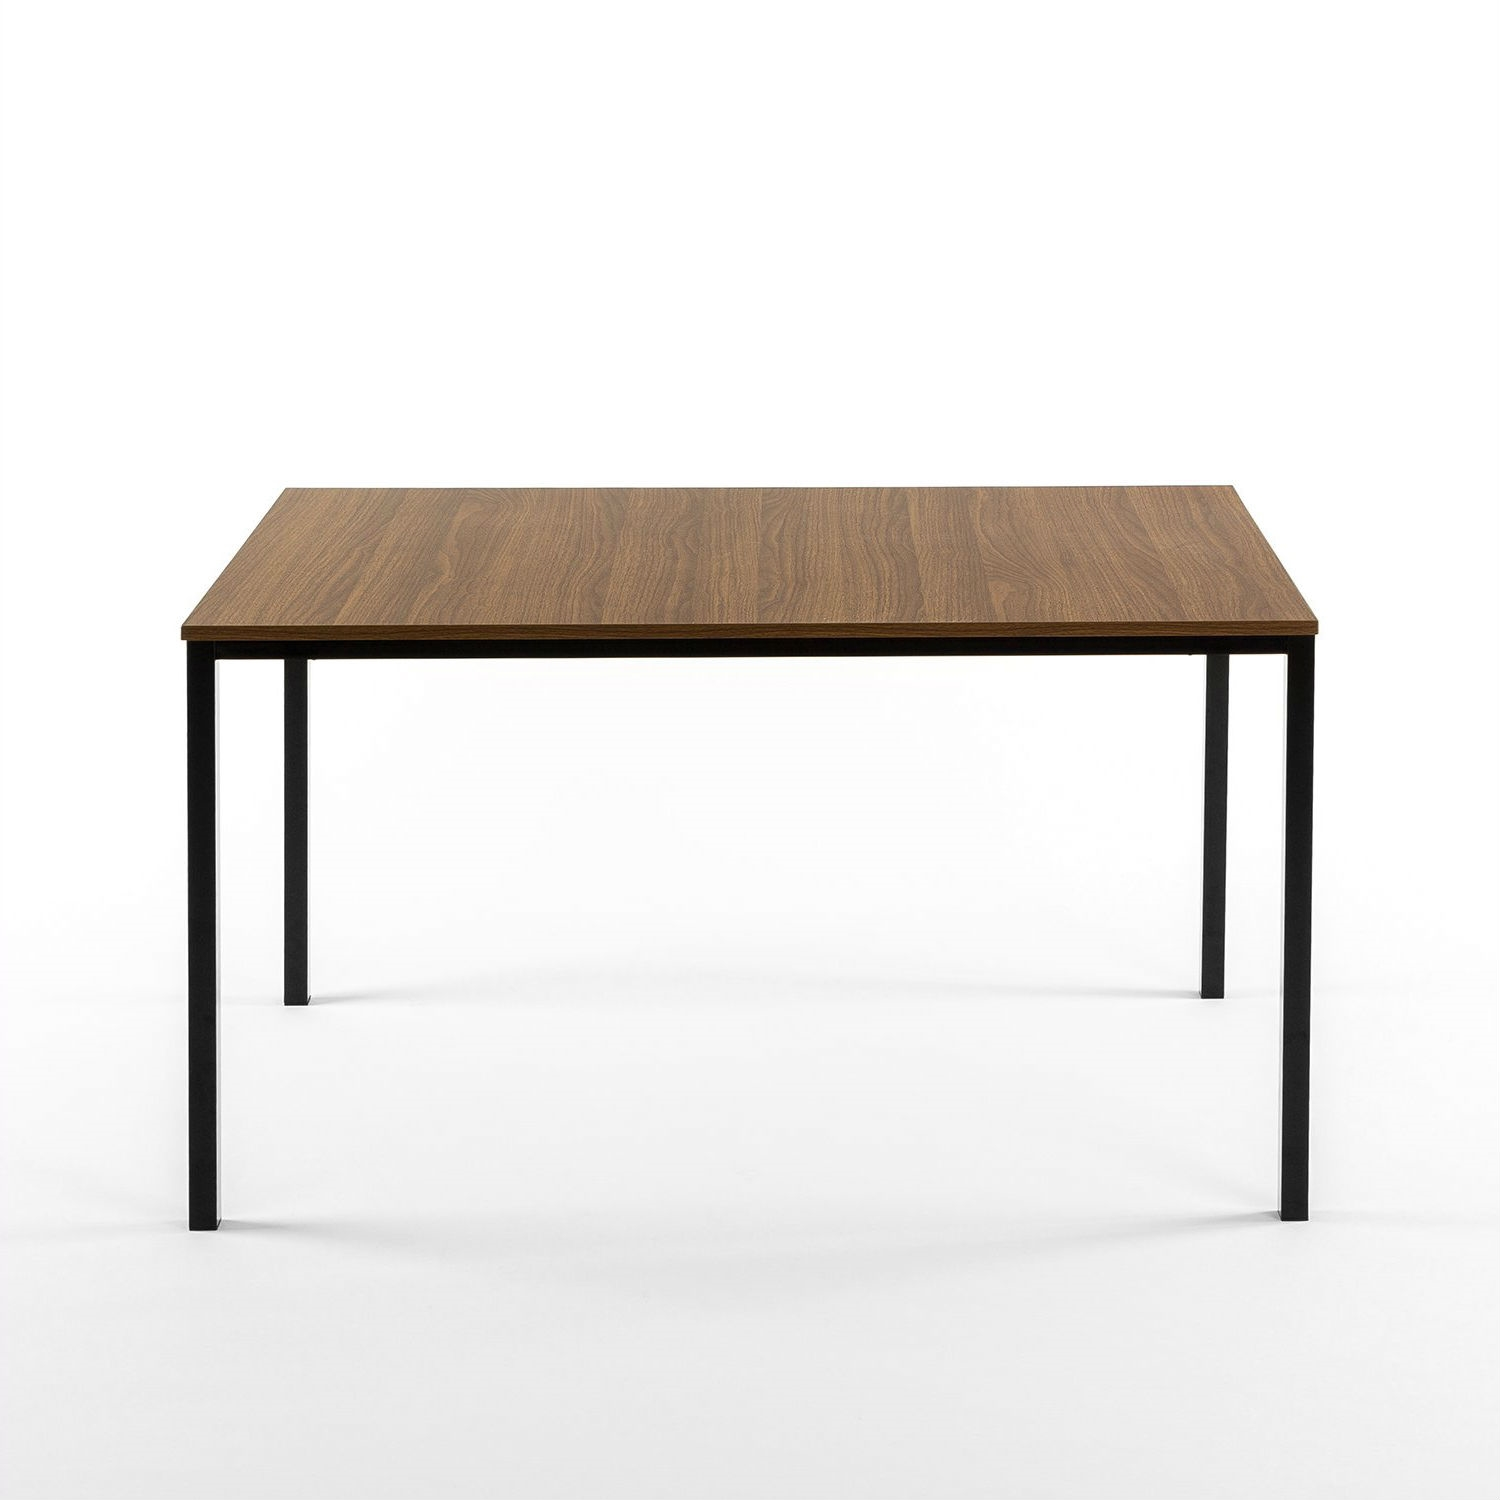 Charmant Modern 48 X 30 Inch Steel Frame Dining Table With Wood Grain Top